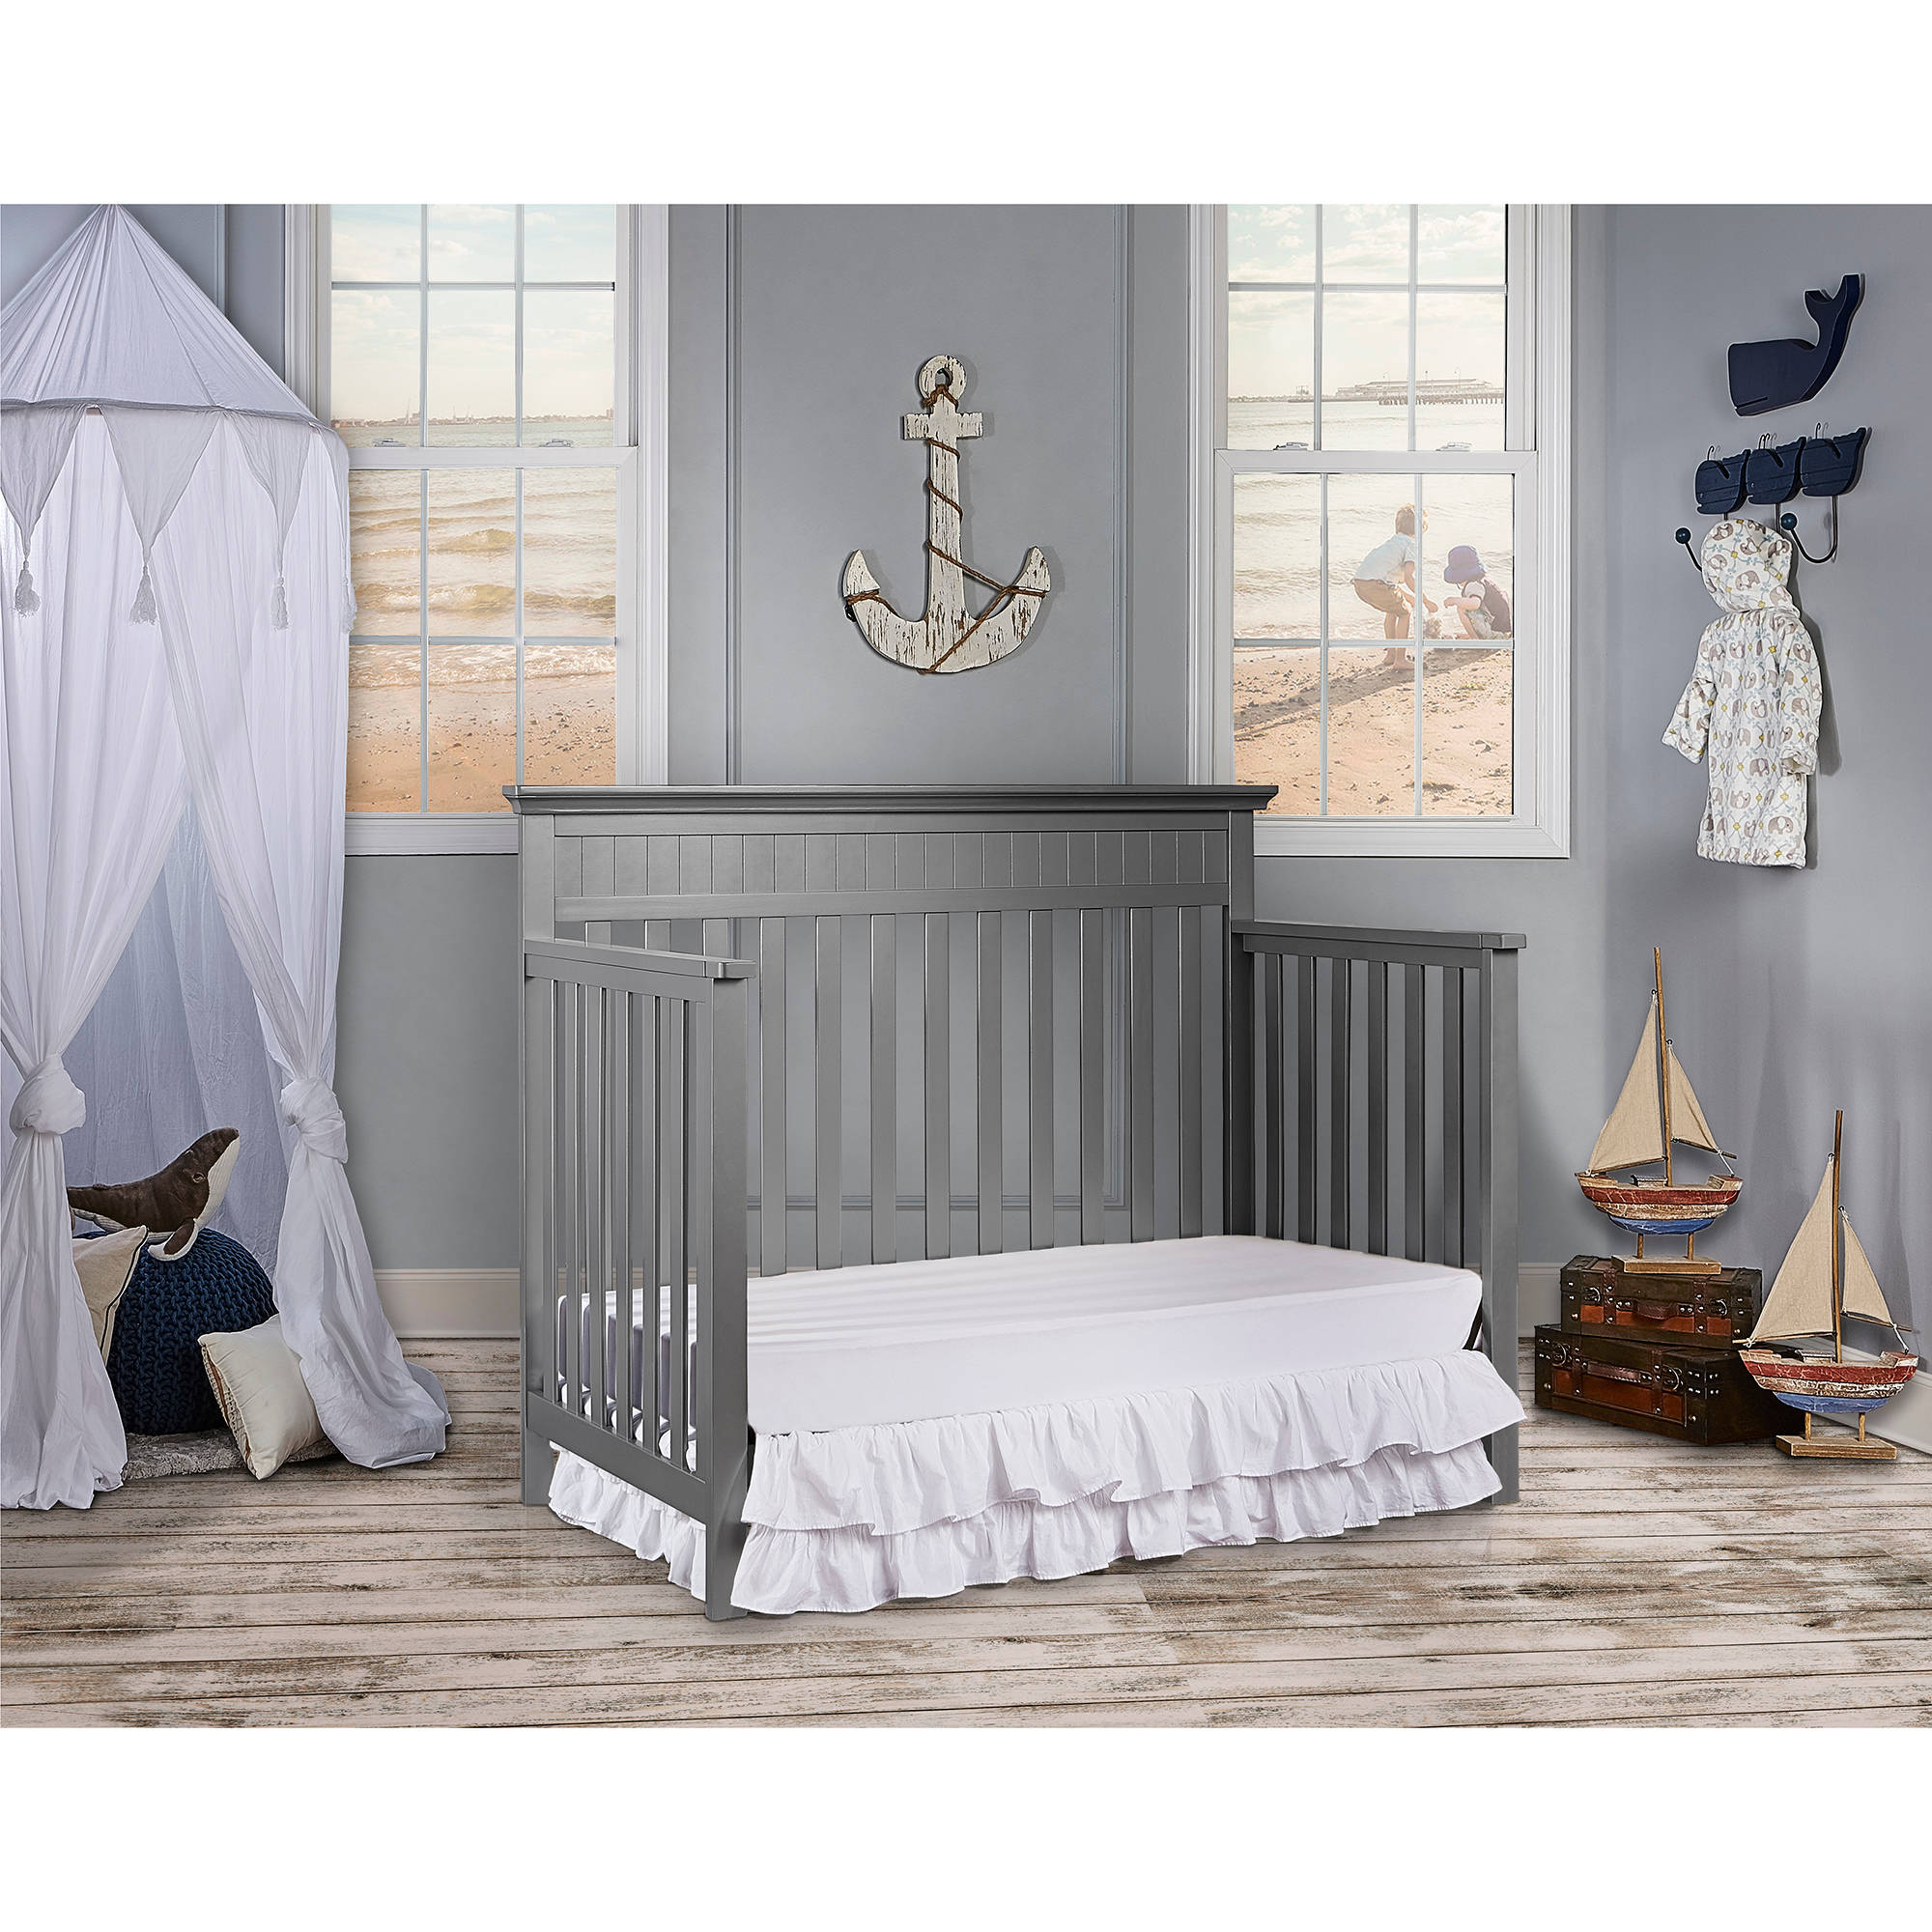 stylish sustainable sophisticated crib pin slate convertible eco dorchester the r is chic sculpted babies cribs us baby